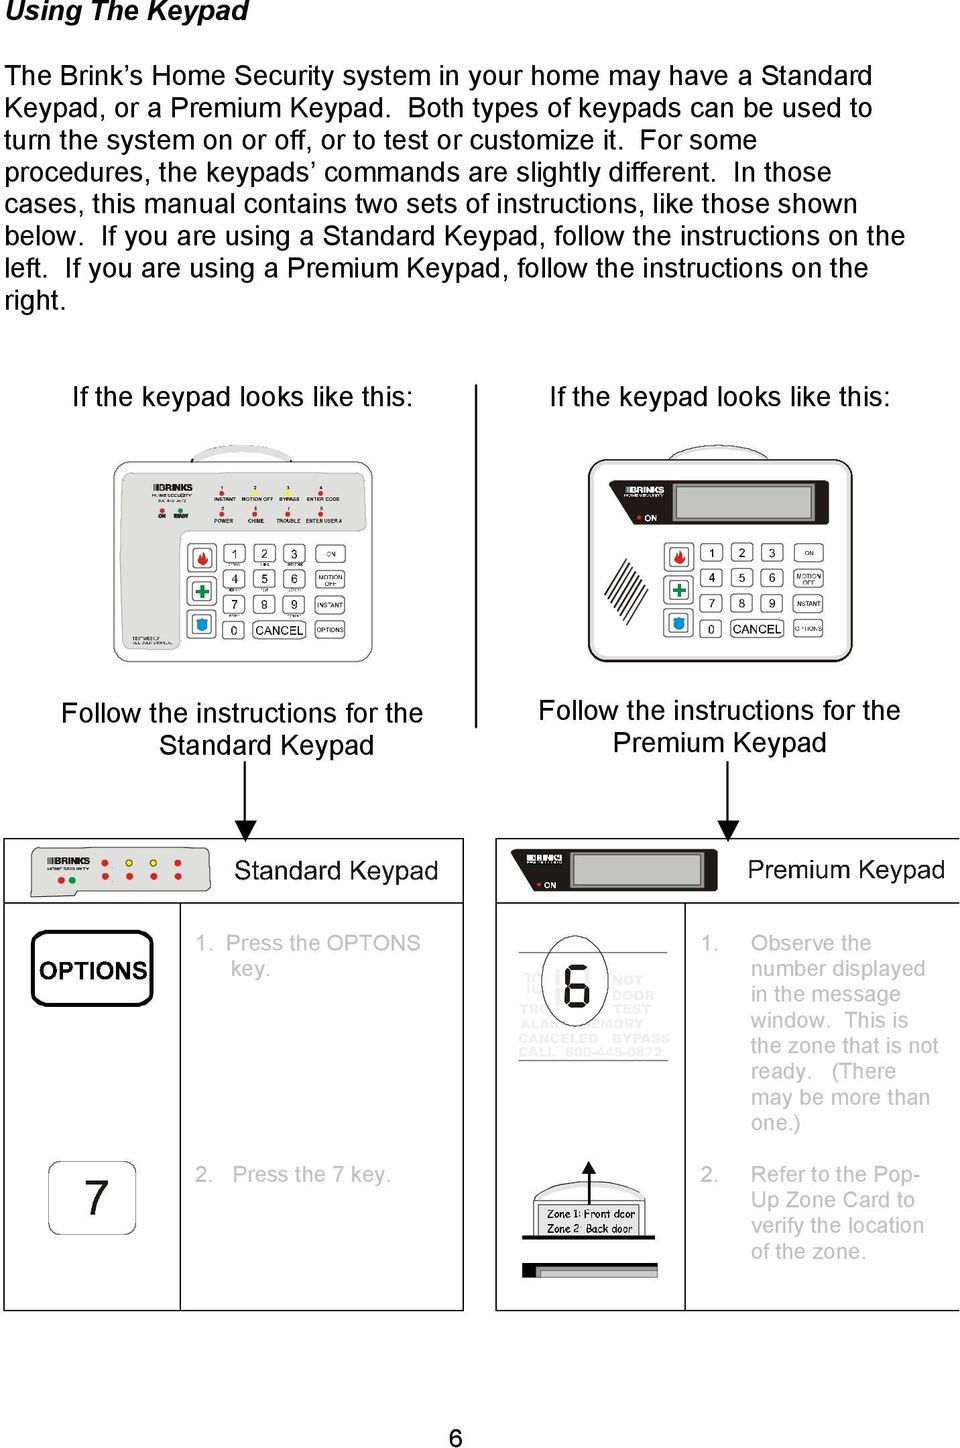 In those cases, this manual contains two sets of instructions, like those shown below. If you are using a Standard Keypad, follow the instructions on the left.